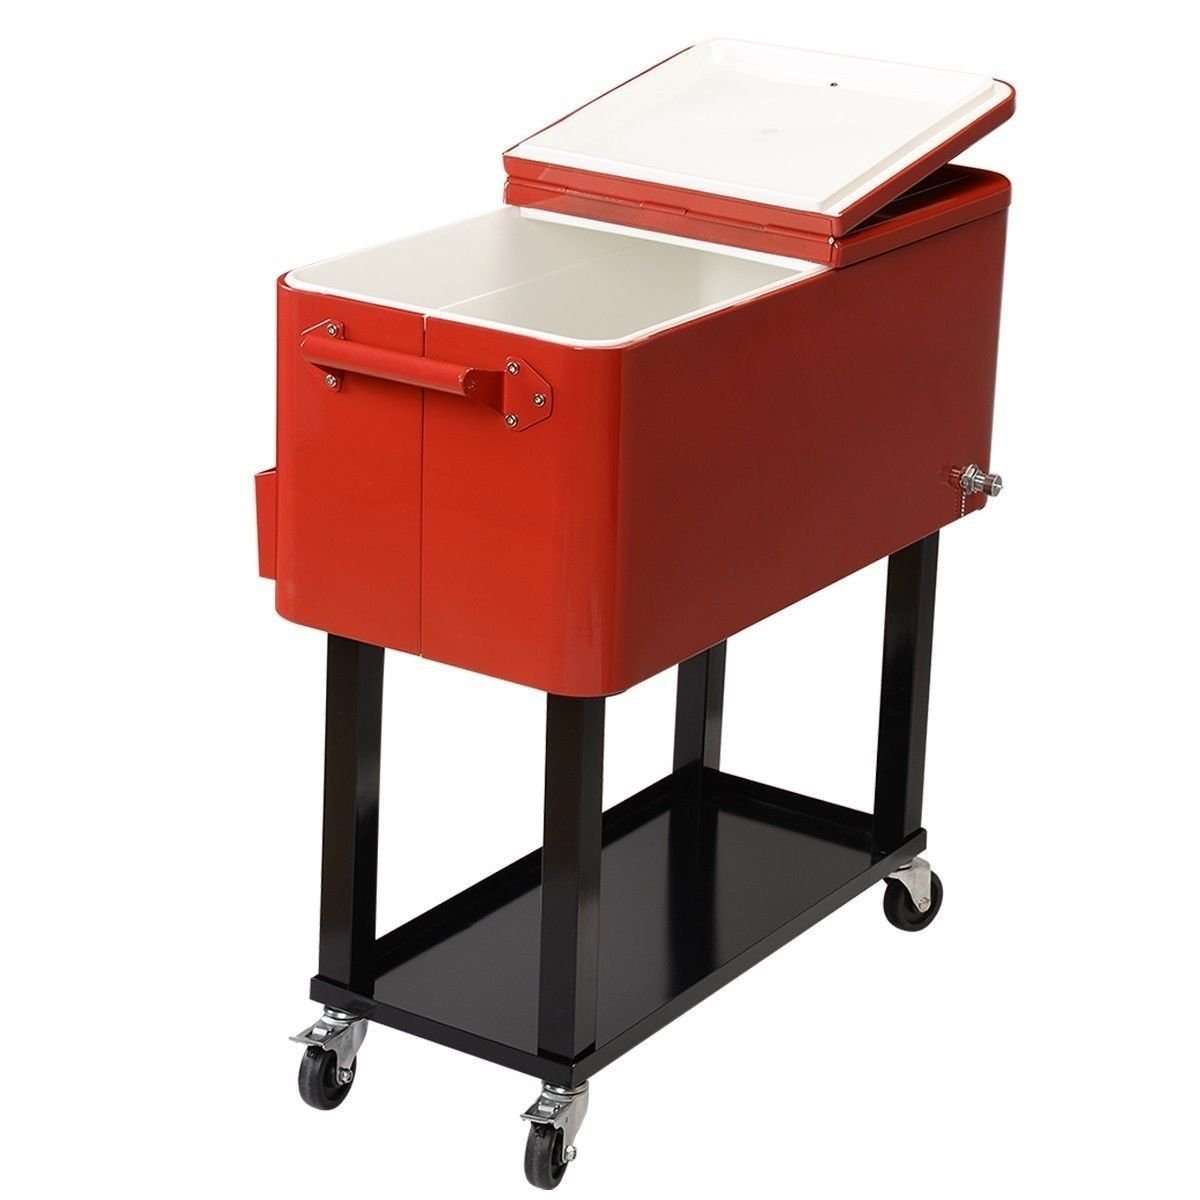 Superieur Get Quotations · Home Patio Deck Cooler Rolling Outdoor 80 Quart Solid  Steel Construction Party .sell#(